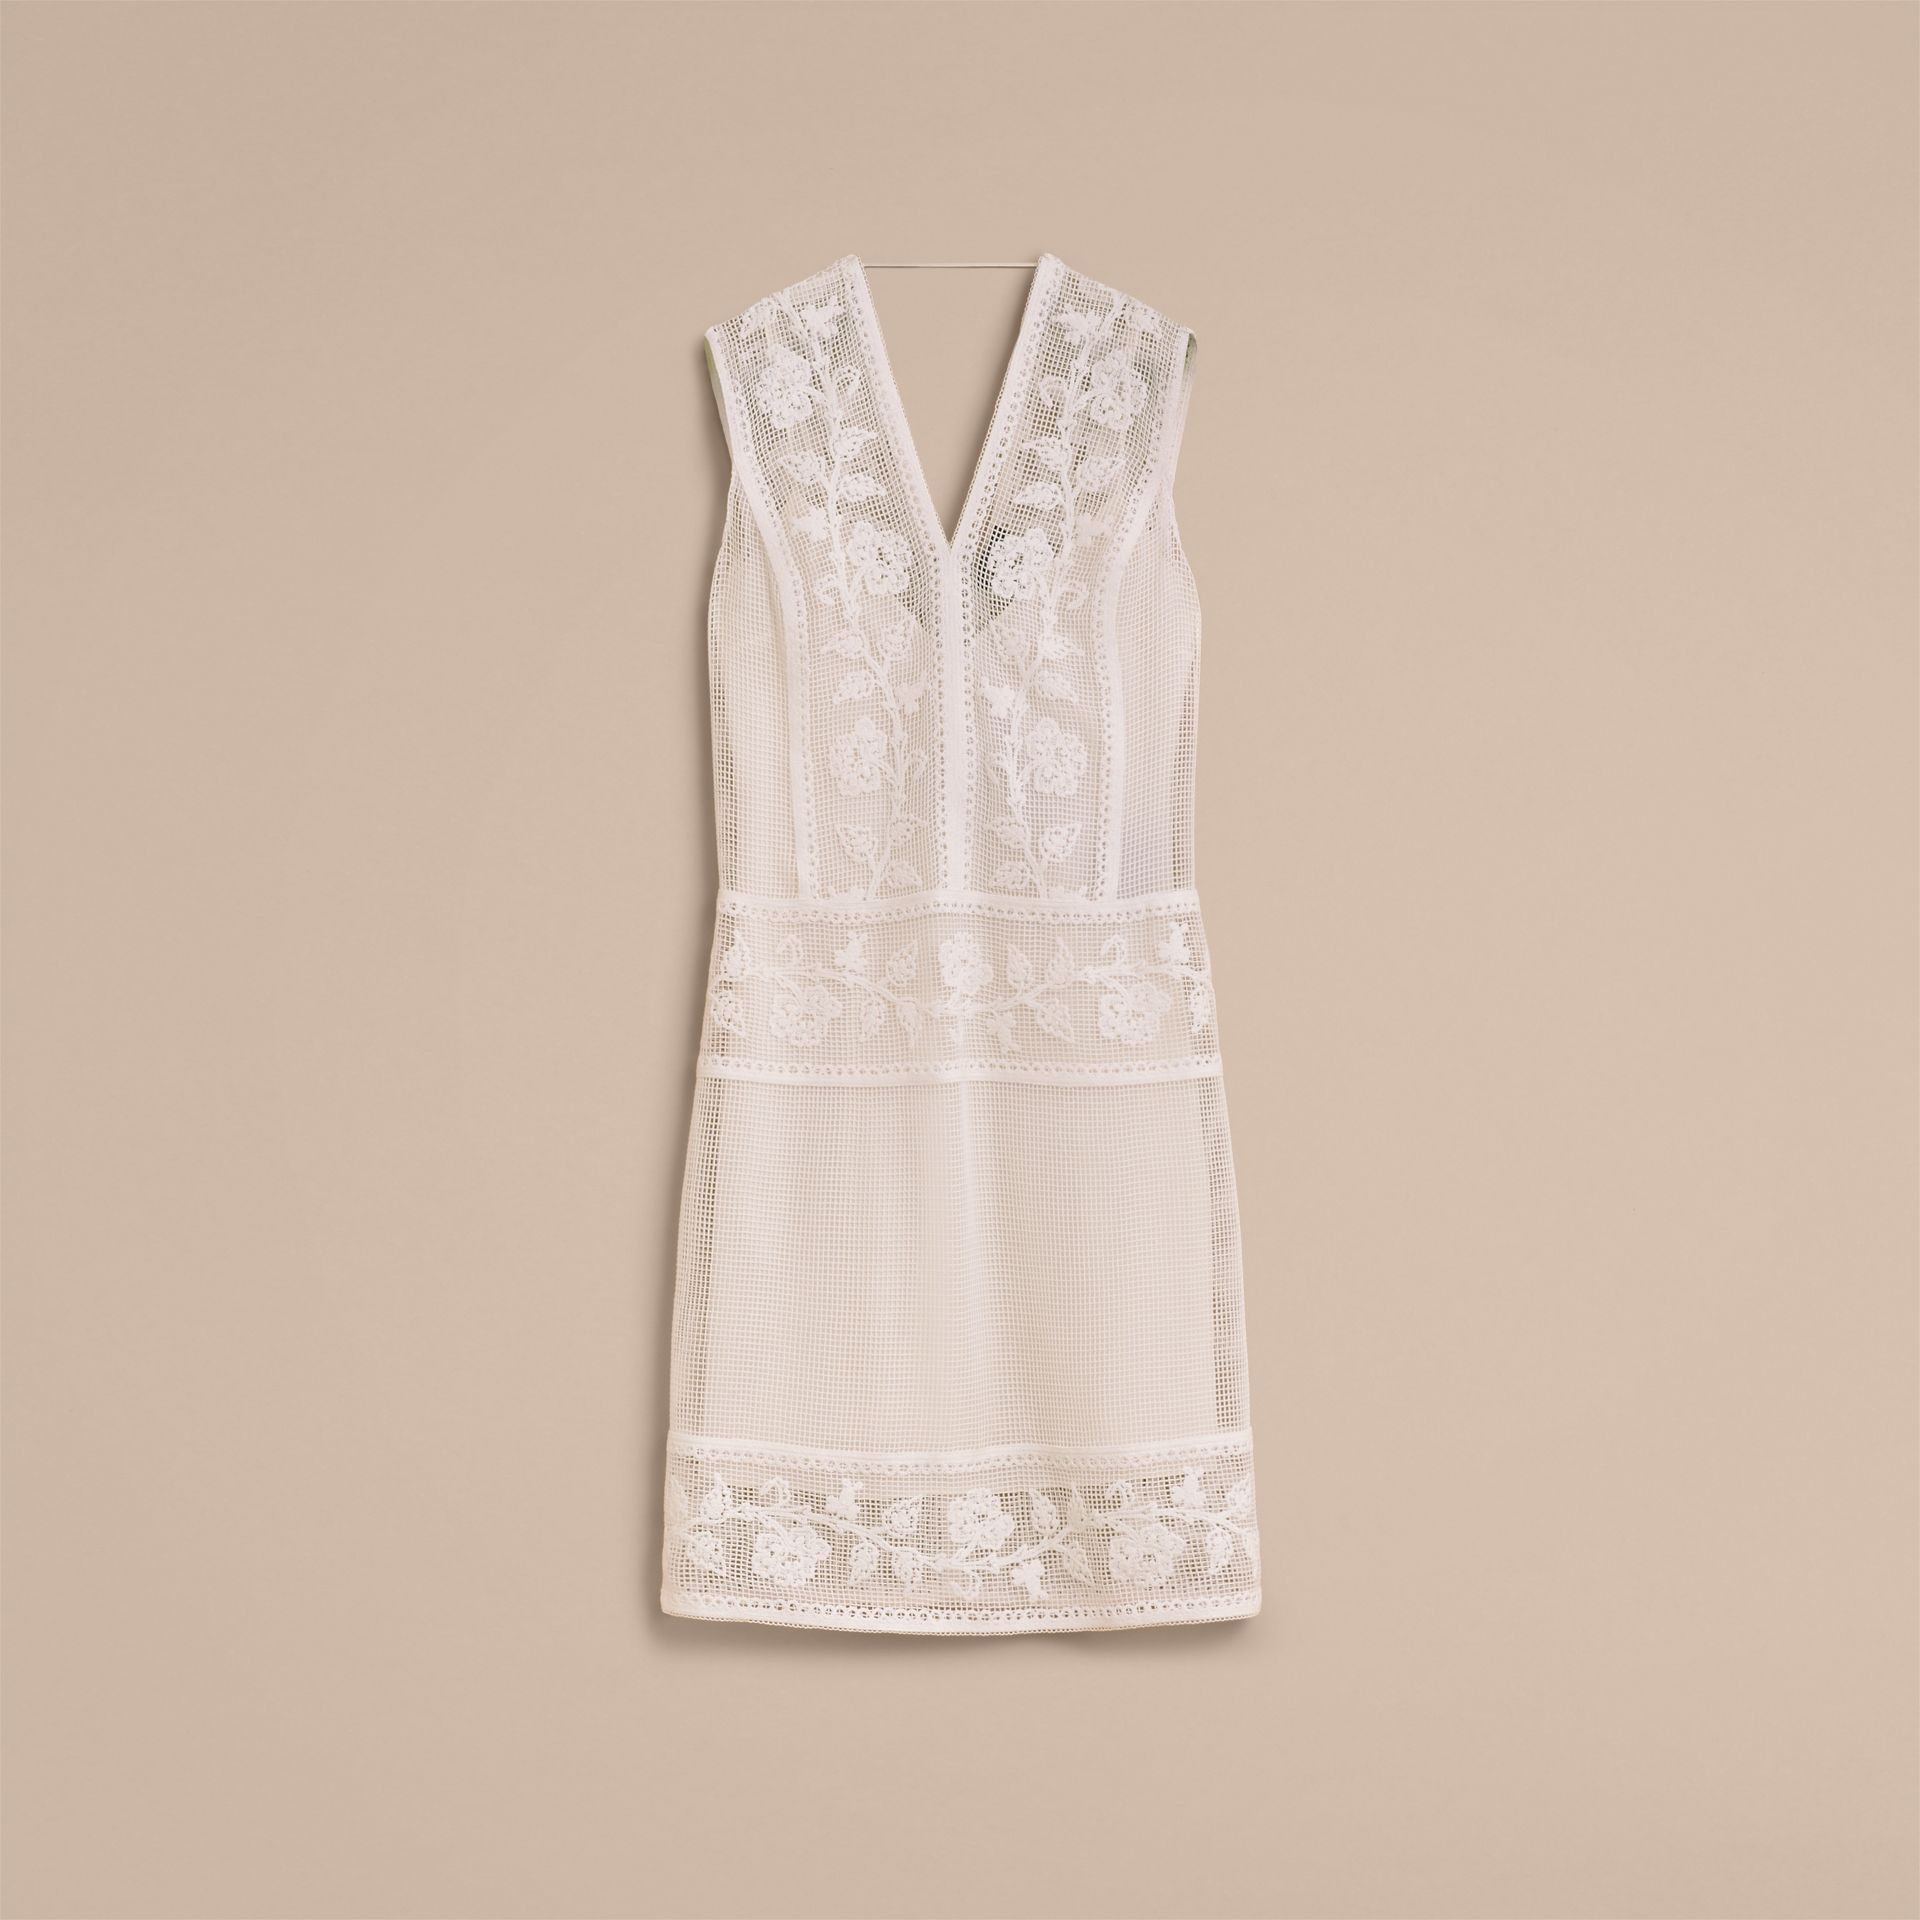 Net and Floral Macramé Lace Panel Dress in Off White - Women | Burberry - gallery image 4